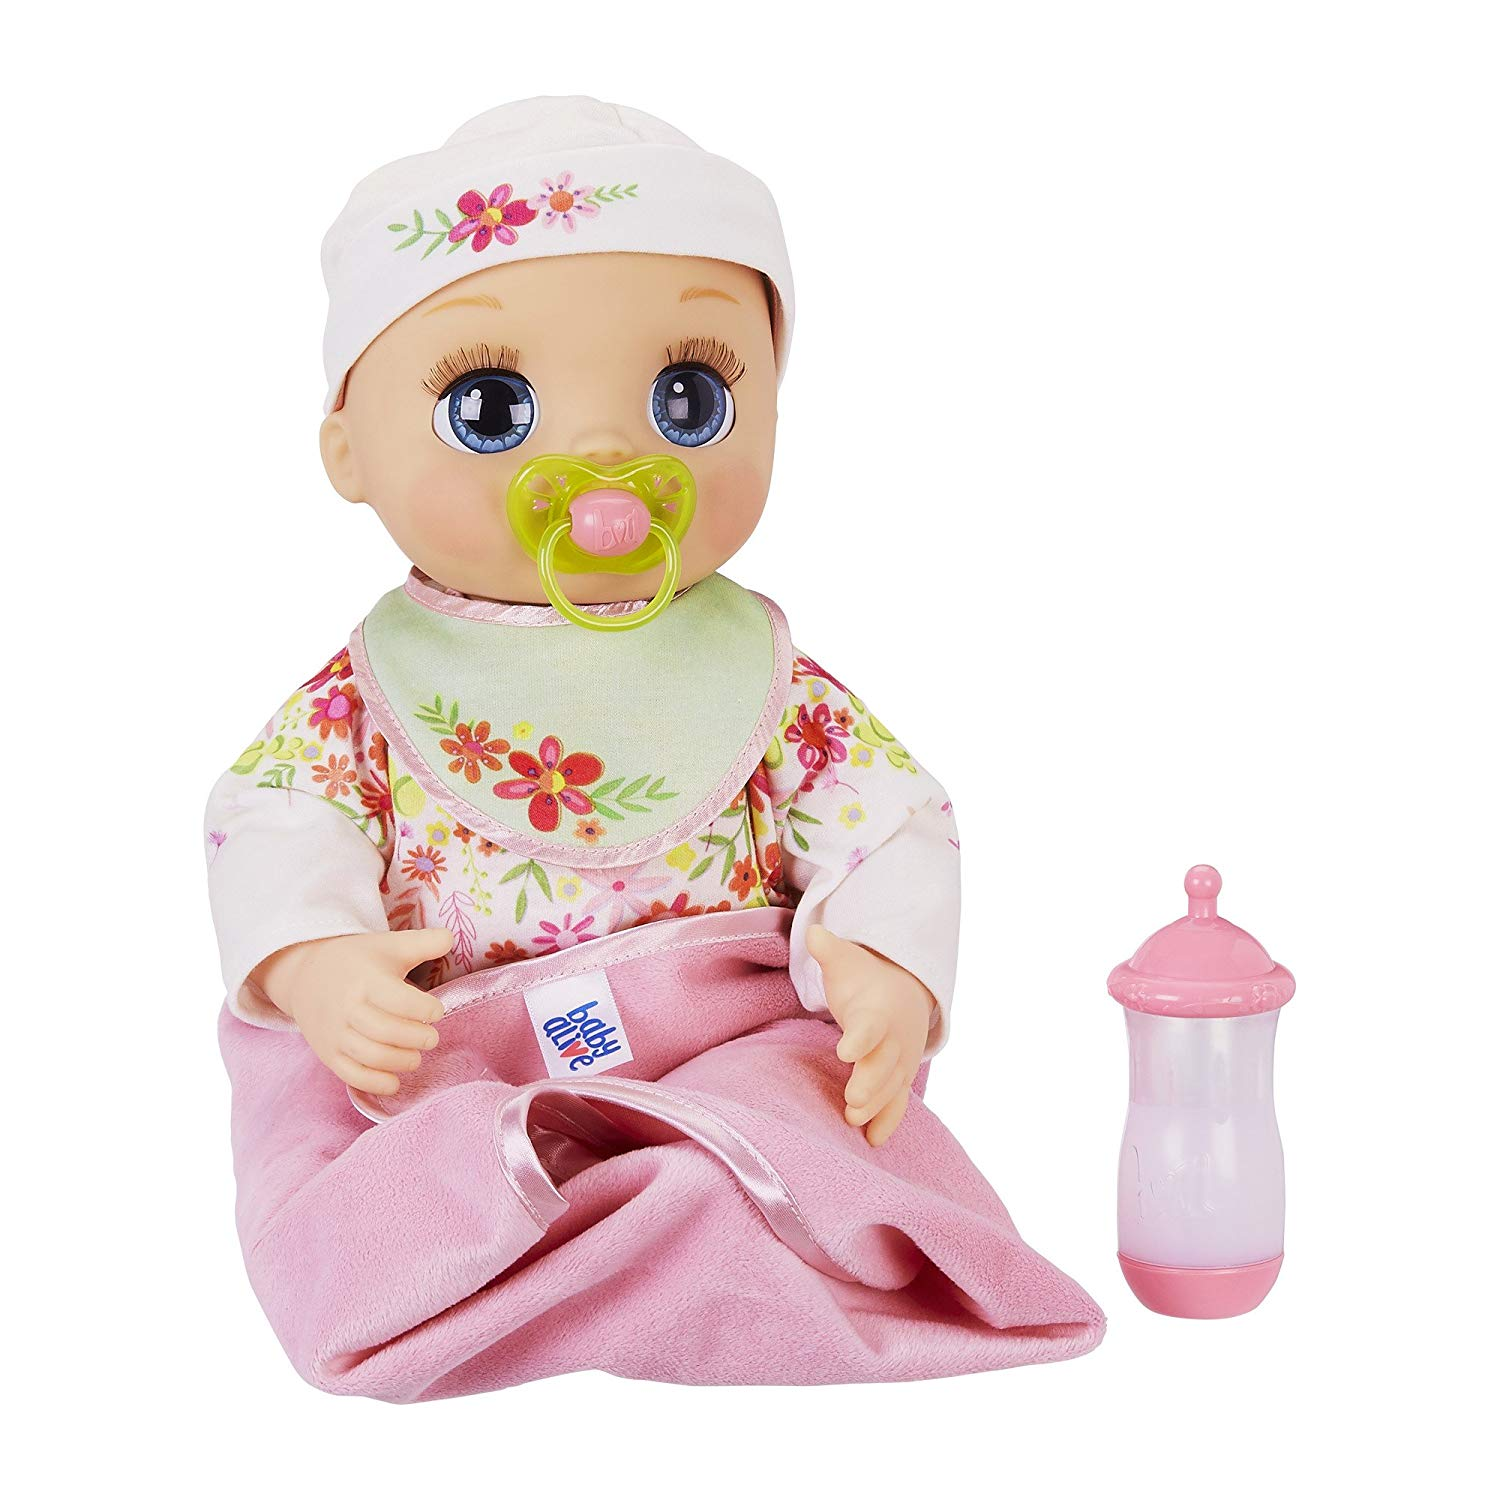 5. Baby Alive Real As Can Be Baby: Realistic Blonde Baby Doll, 80+ Lifelike Expressions, Movements & Real Baby Sounds